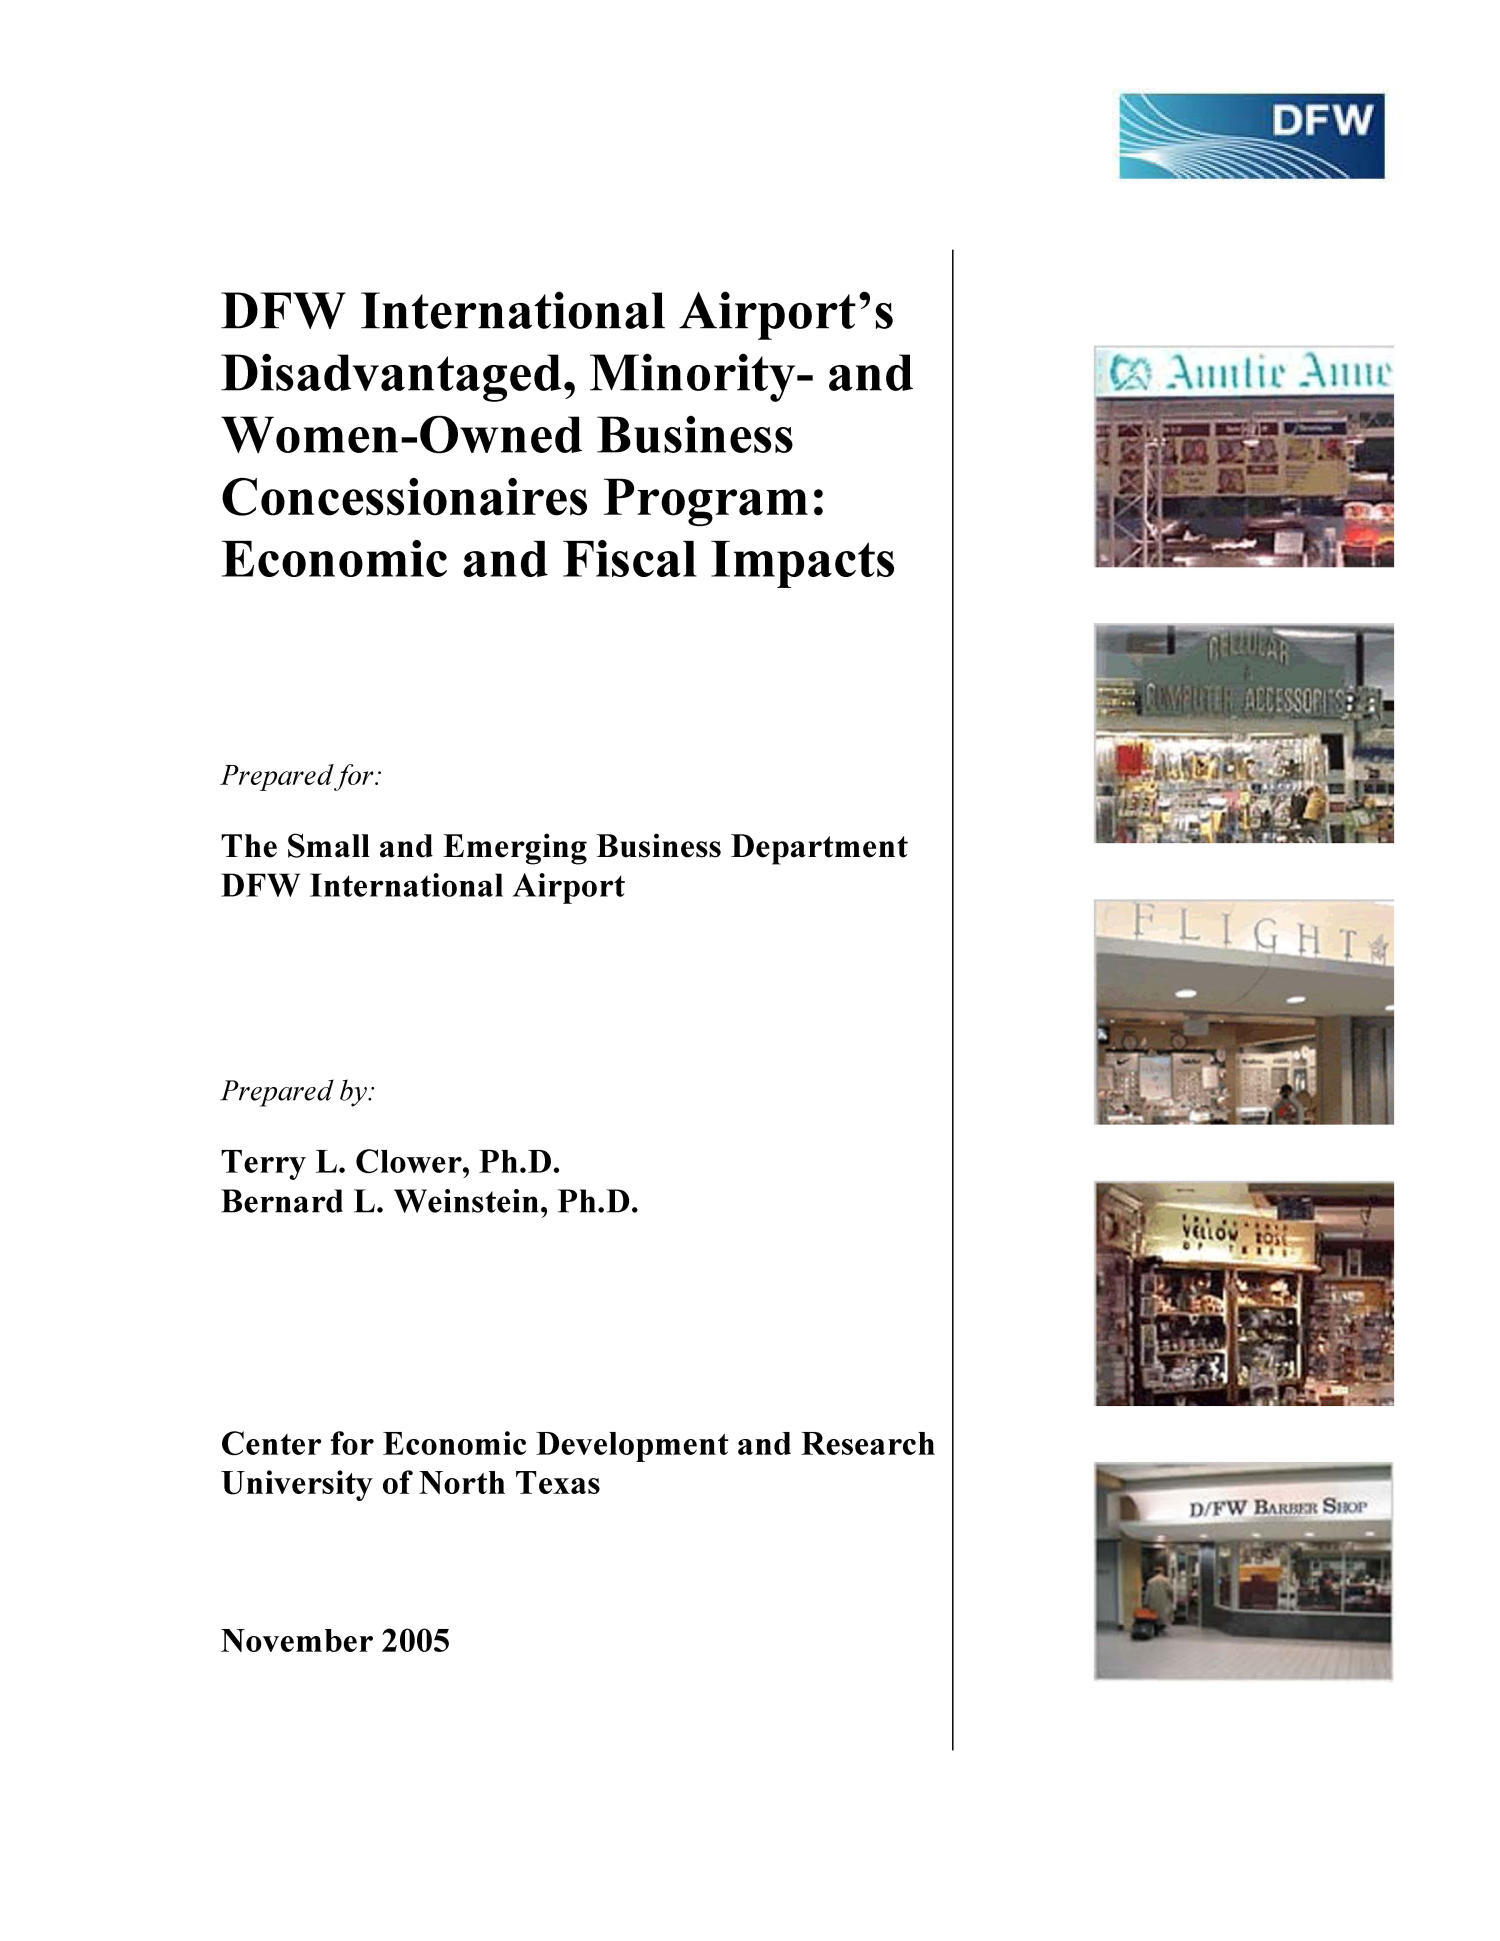 DFW International Airport's Disadvantaged, Minority- and Women-Owned Business Concessionaires Program: Economic and Fiscal Impacts                                                                                                      Front Cover